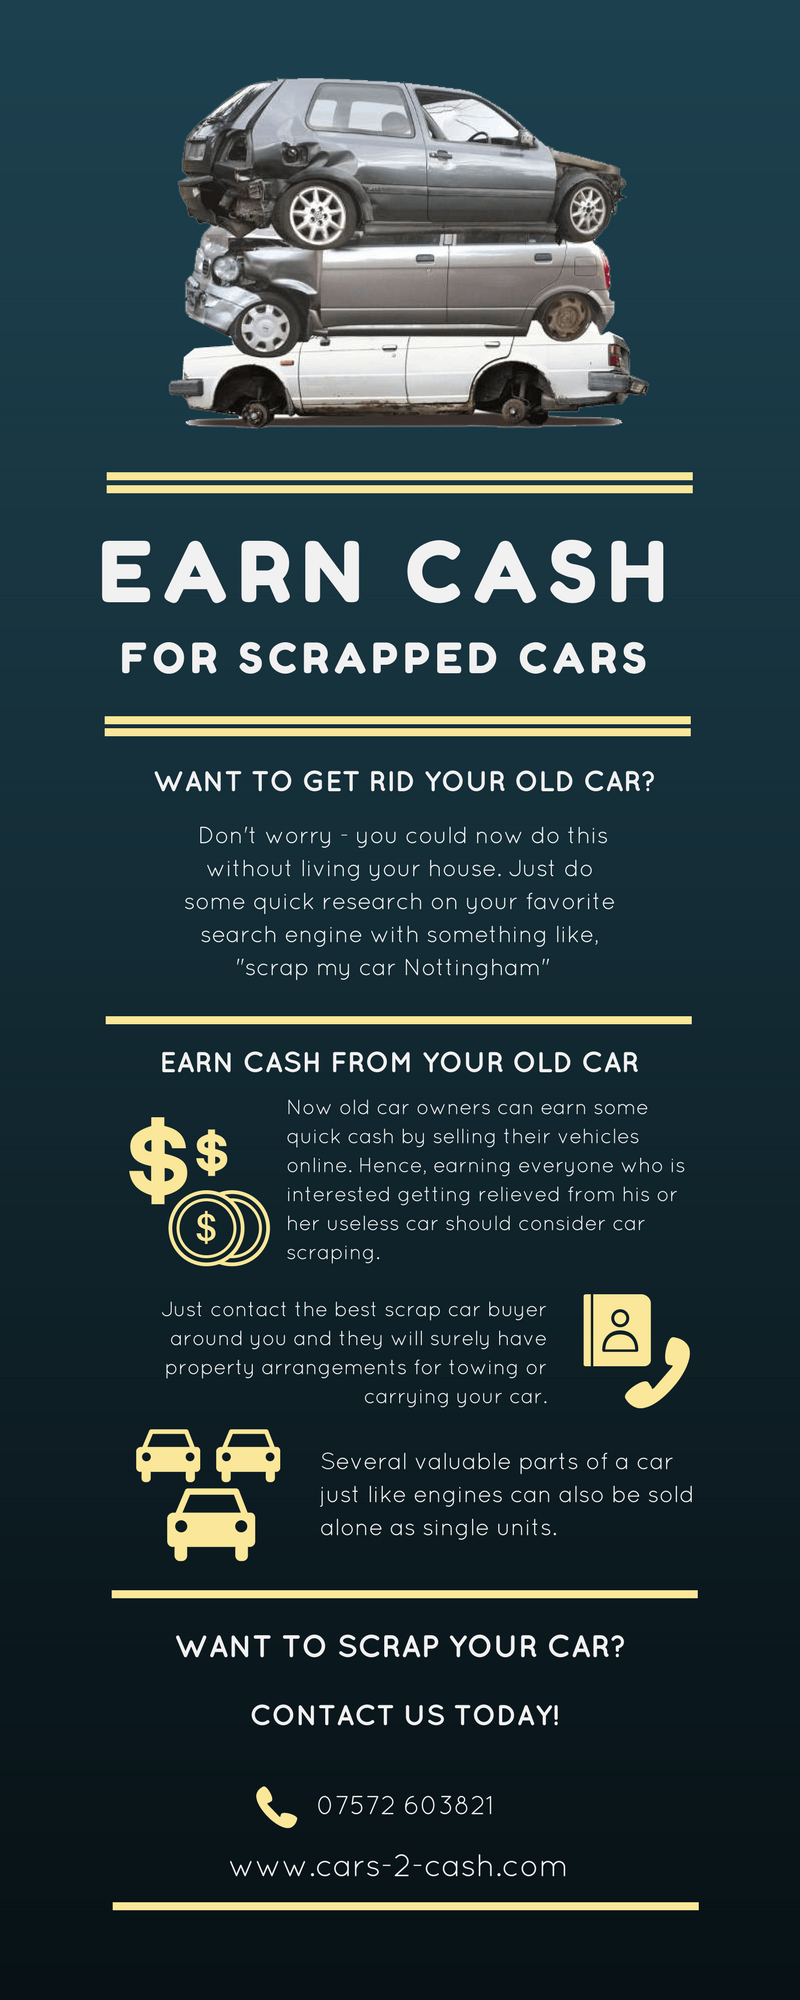 Old car owners can earn some quick cash by selling their old cars ...